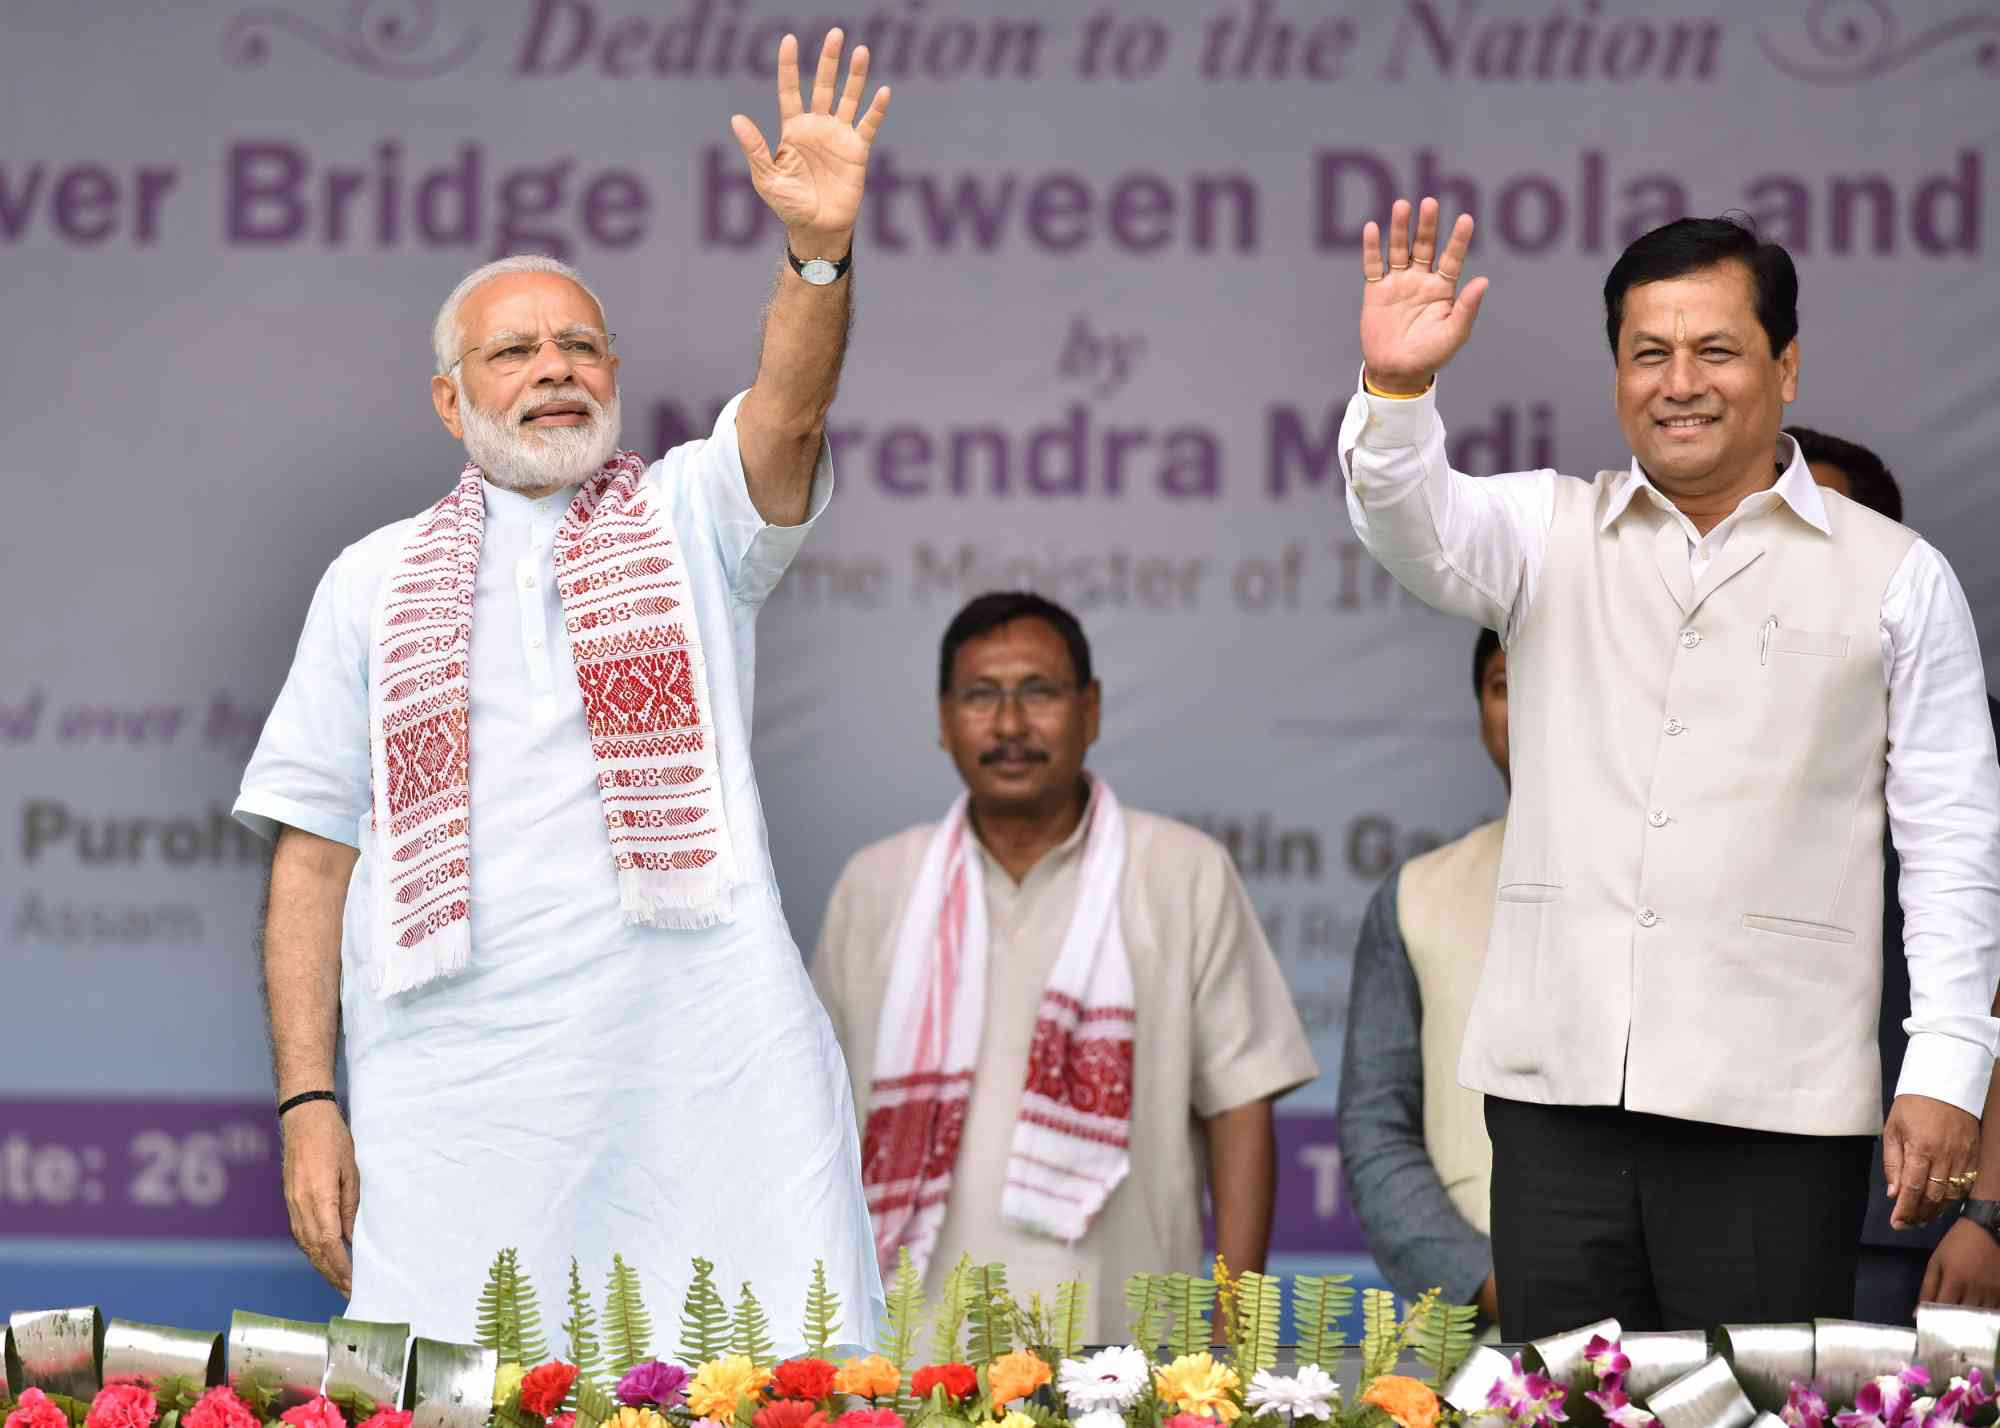 Prime Minister Narendra Modi with Assam Chief Minister Sarbananda Sonowal. (Photo credit: AFP).